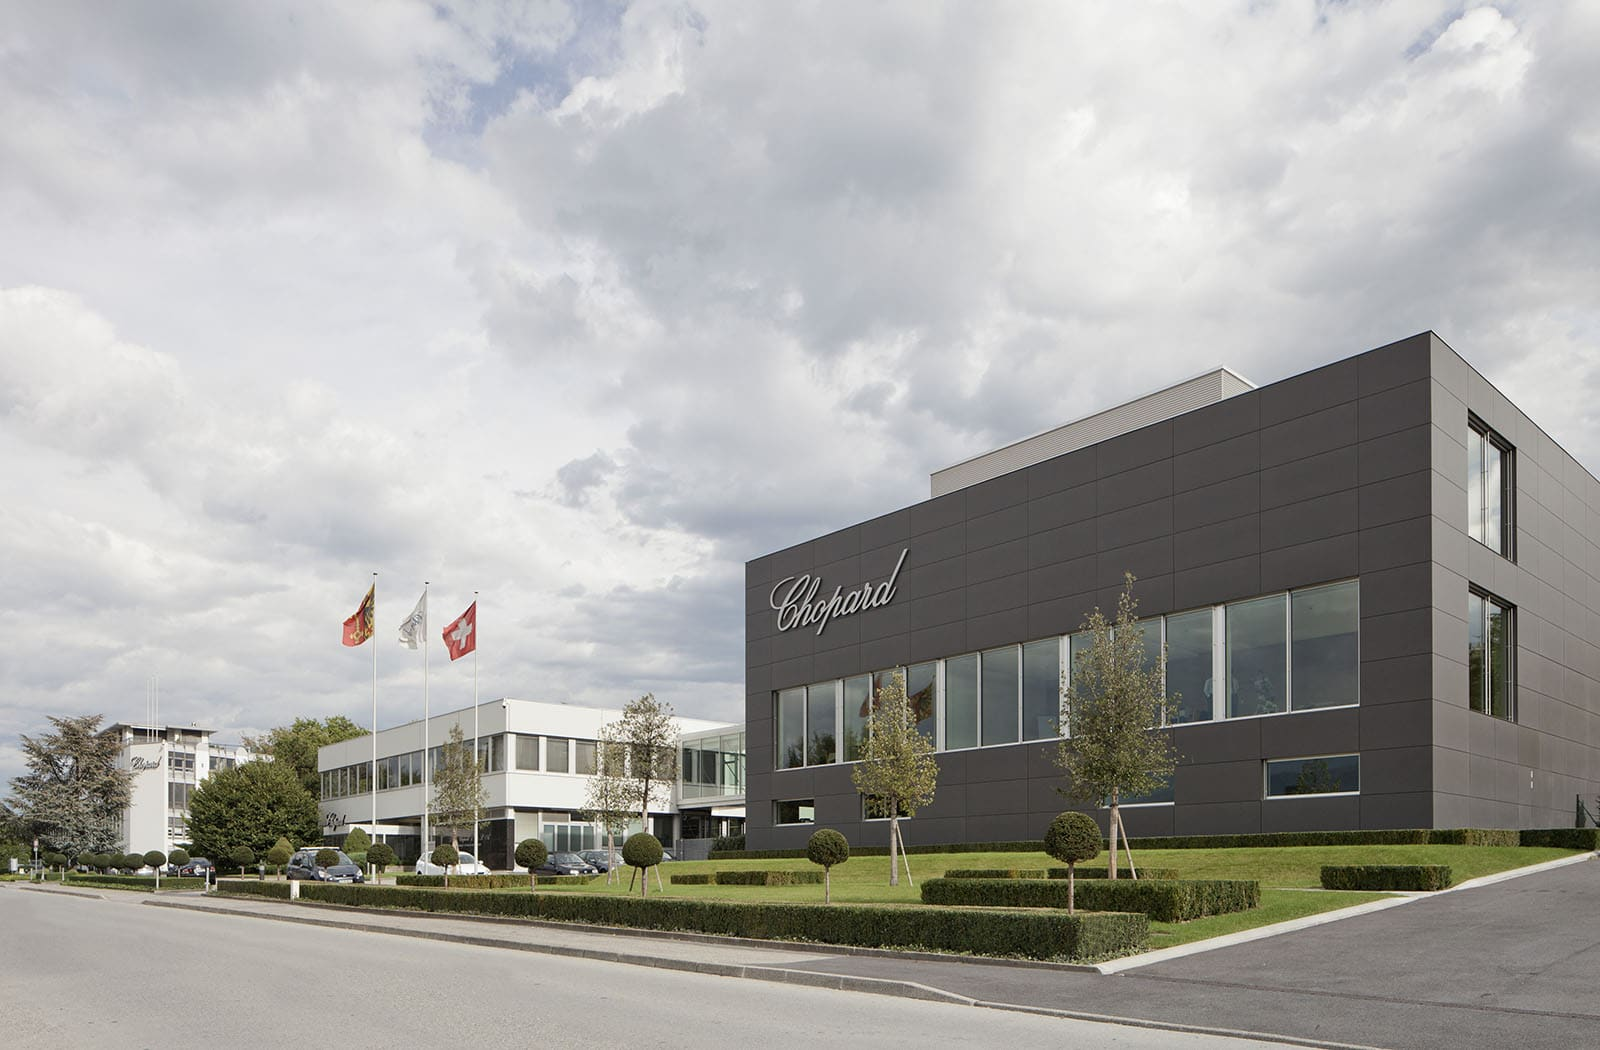 Chopard Headquarters in Meyrin, Switzerland.